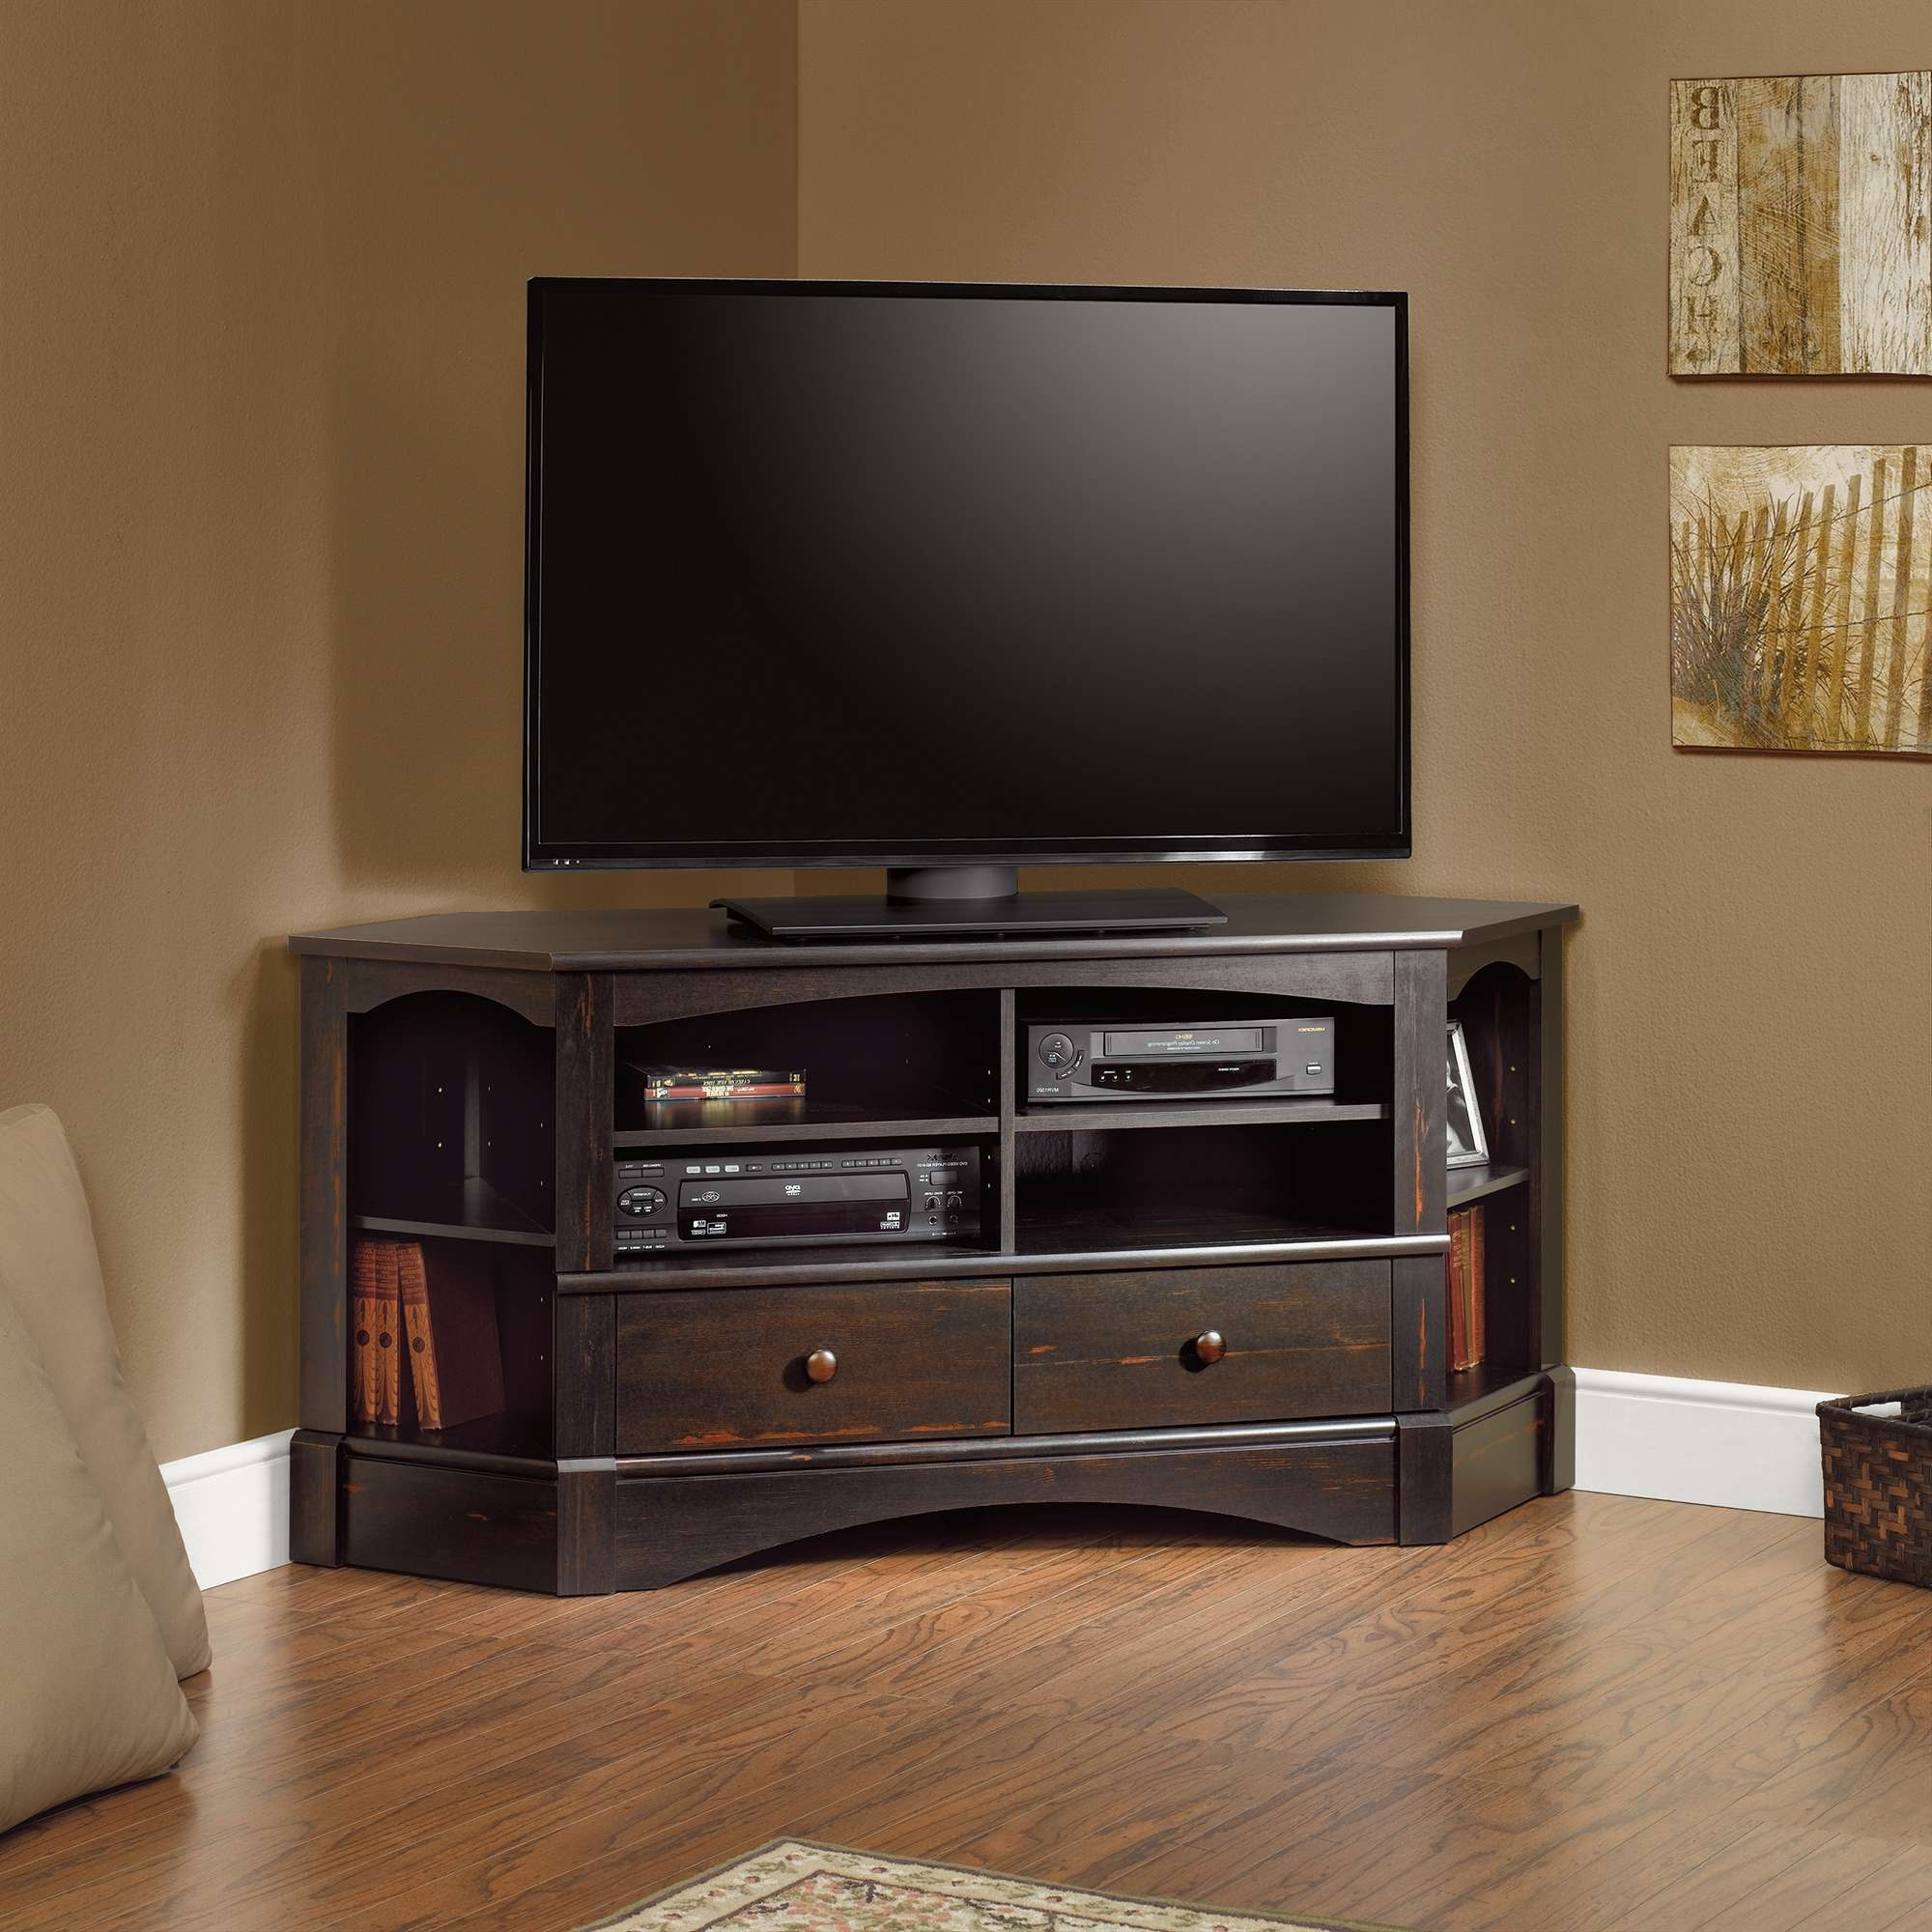 Small Wooden Corner Tv Stand Console Cabinet With Fireplace For Small Corner Tv Cabinets (View 11 of 20)